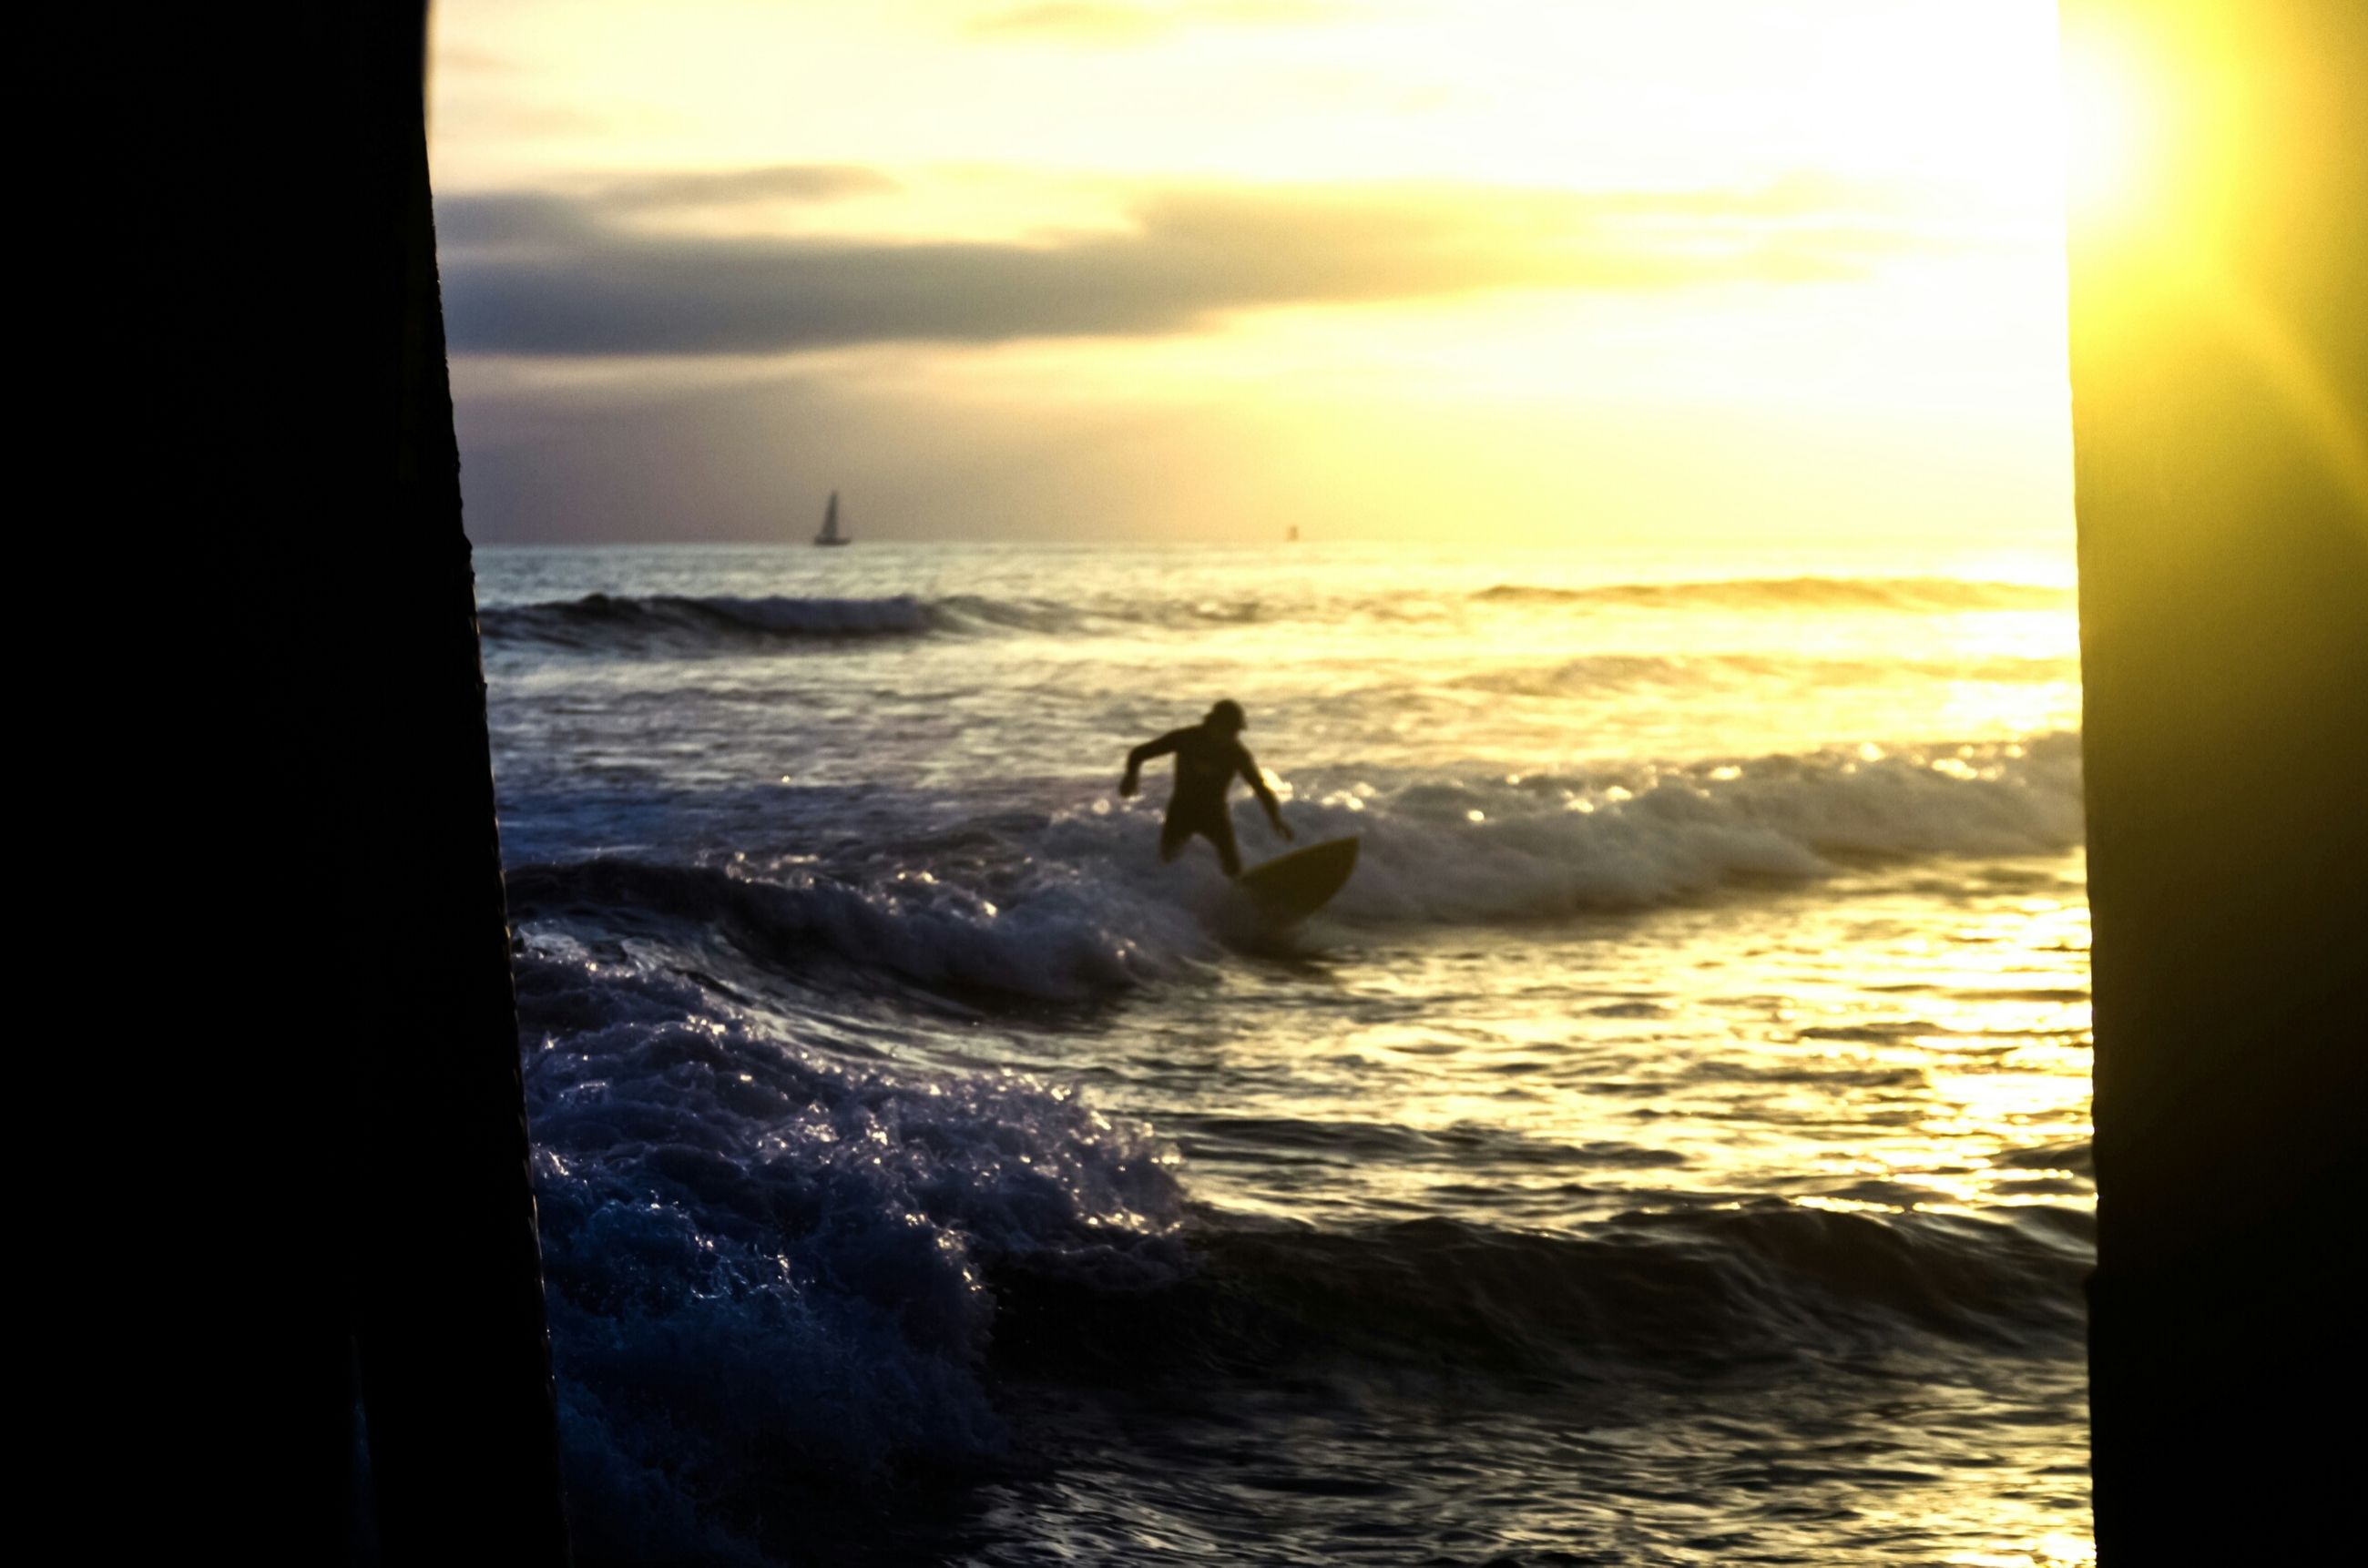 sea, water, horizon over water, sunset, beach, silhouette, sun, scenics, wave, sky, beauty in nature, leisure activity, nature, tranquil scene, sunlight, tranquility, lifestyles, shore